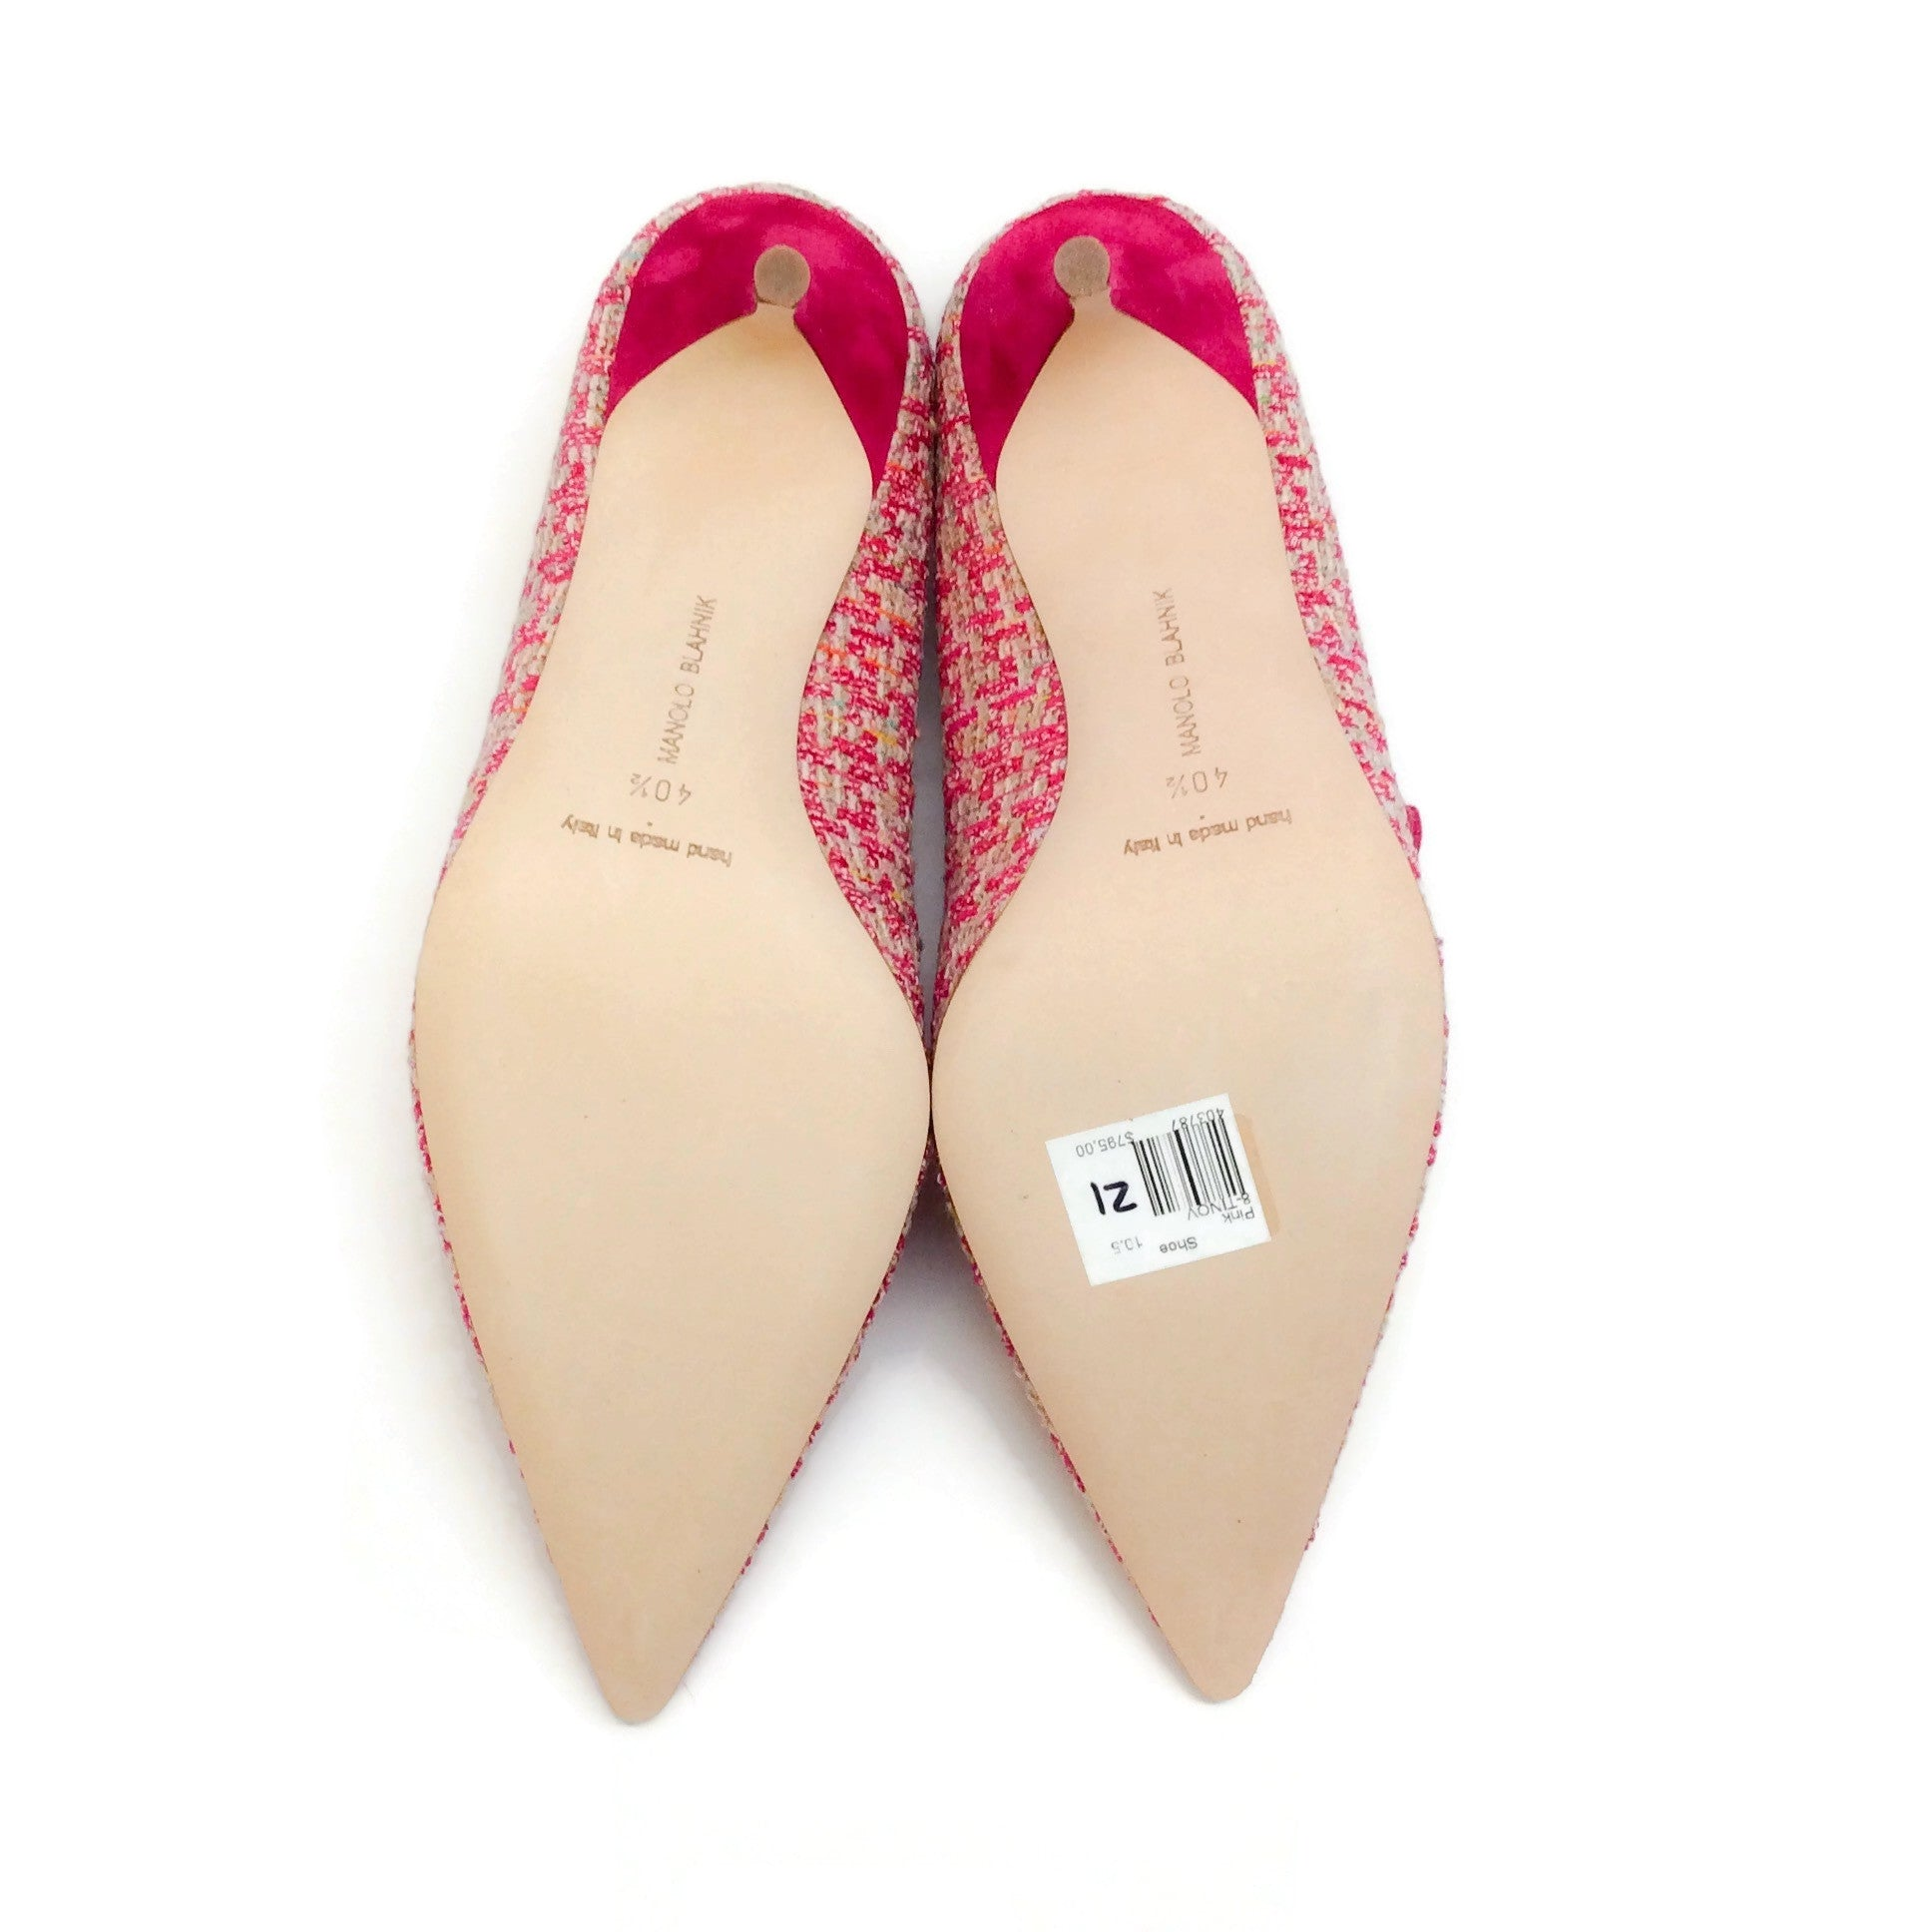 Manolo Blahnik Pink Tweed Tinov Pumps